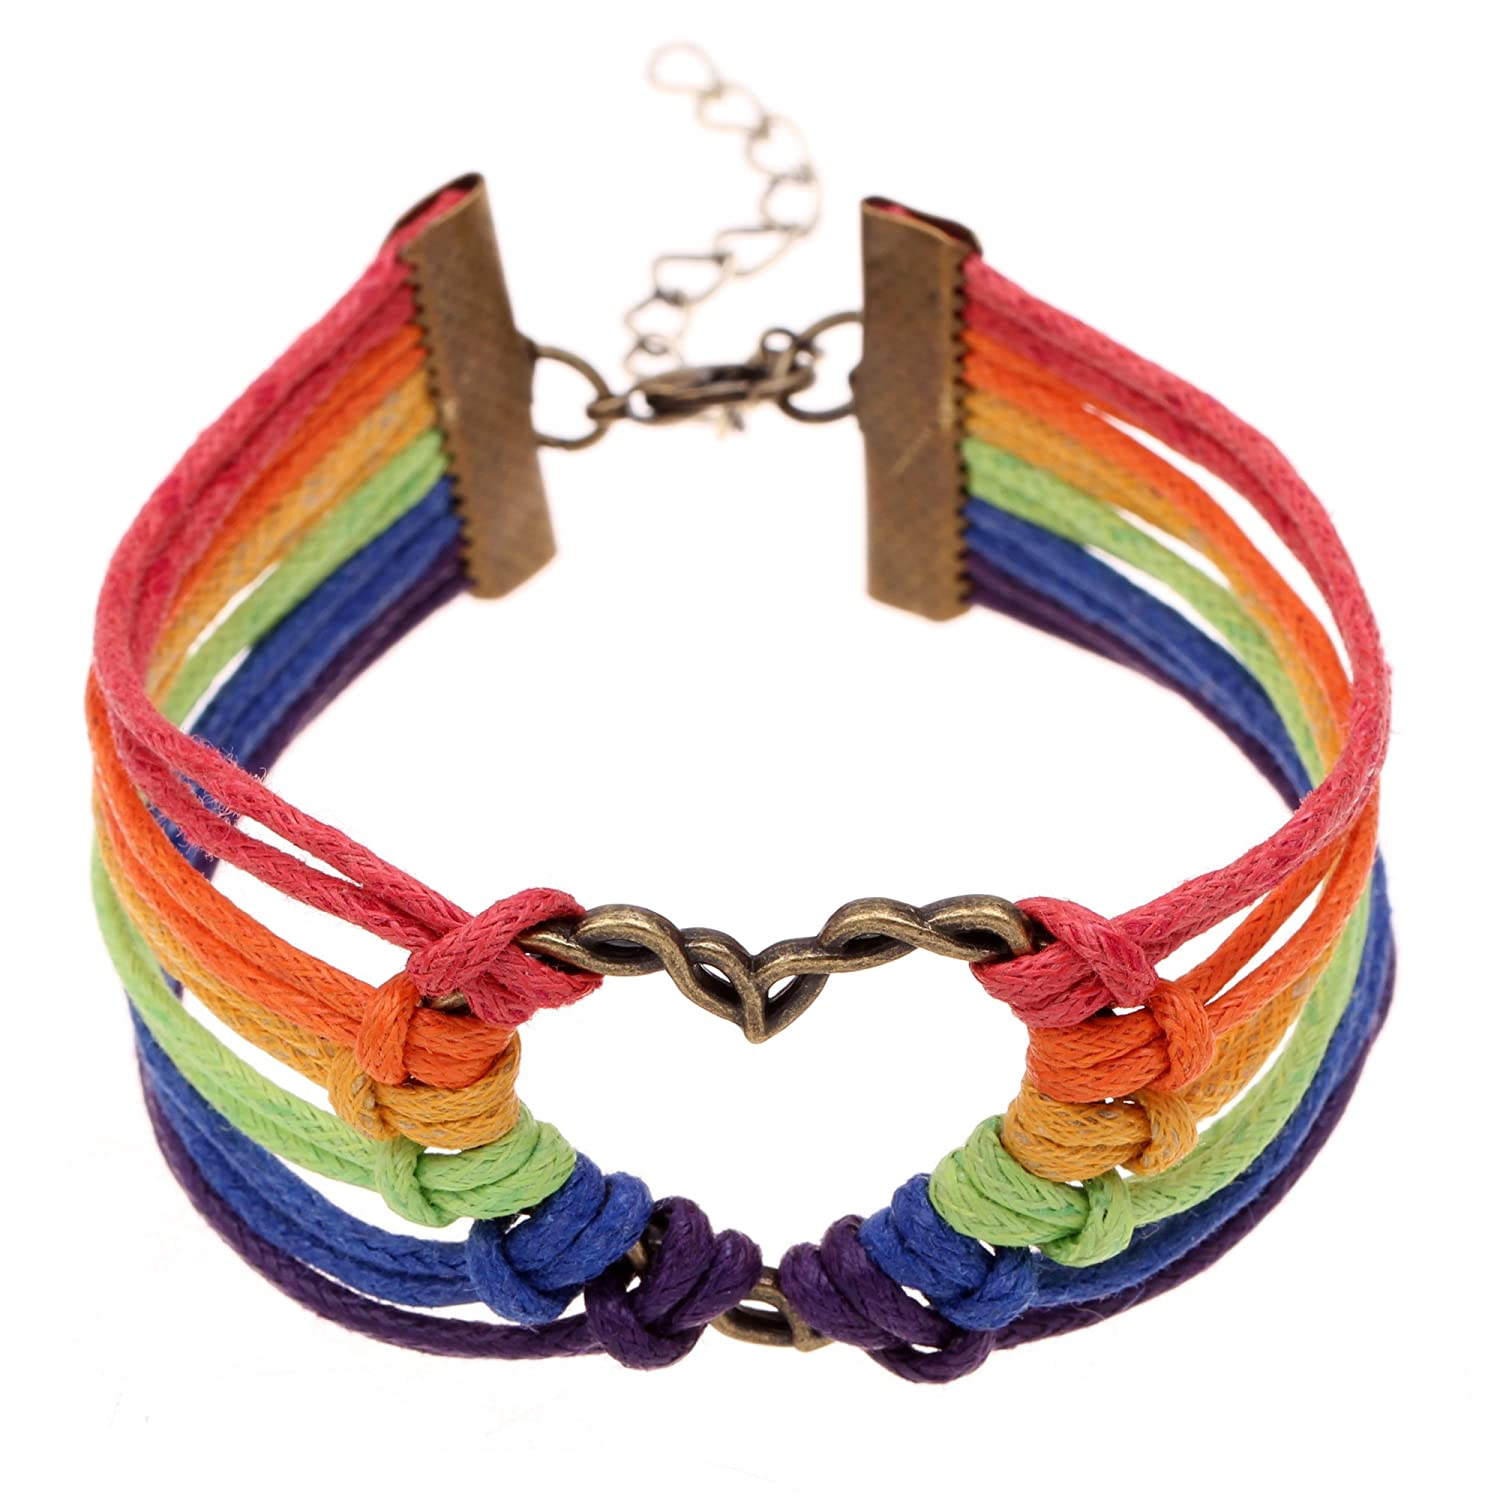 Amazon.com: Infinity Collection LGBT Bracelet, Lesbian Pride Jewelry,  Rainbow Pride Bracelet & Perfect Lesbian Gifts -Free Shipping: Arts, Crafts  & Sewing